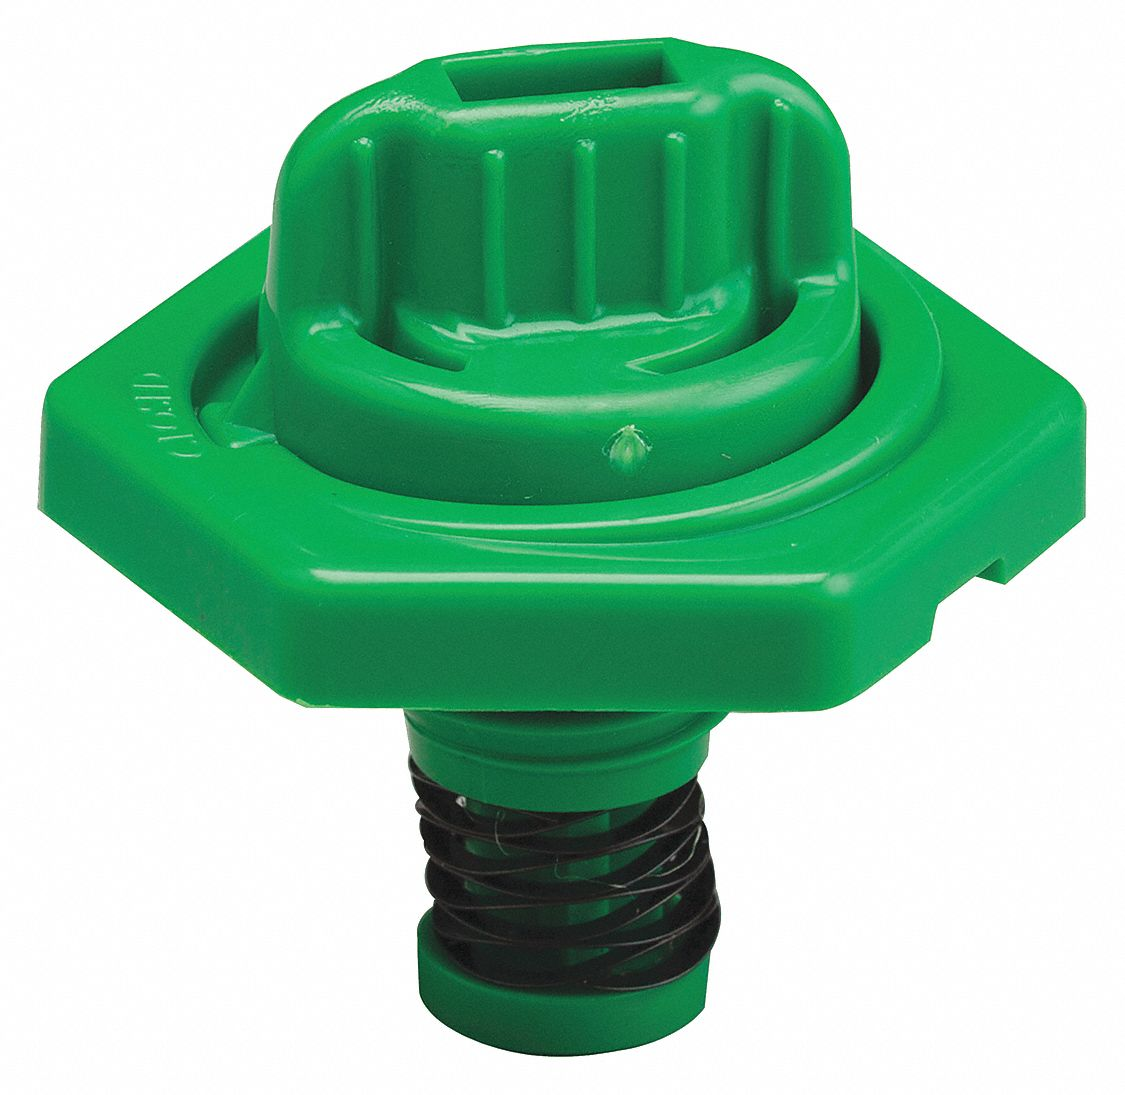 HDPE Breather Vent, Green; For Use With Lubricating Fluids